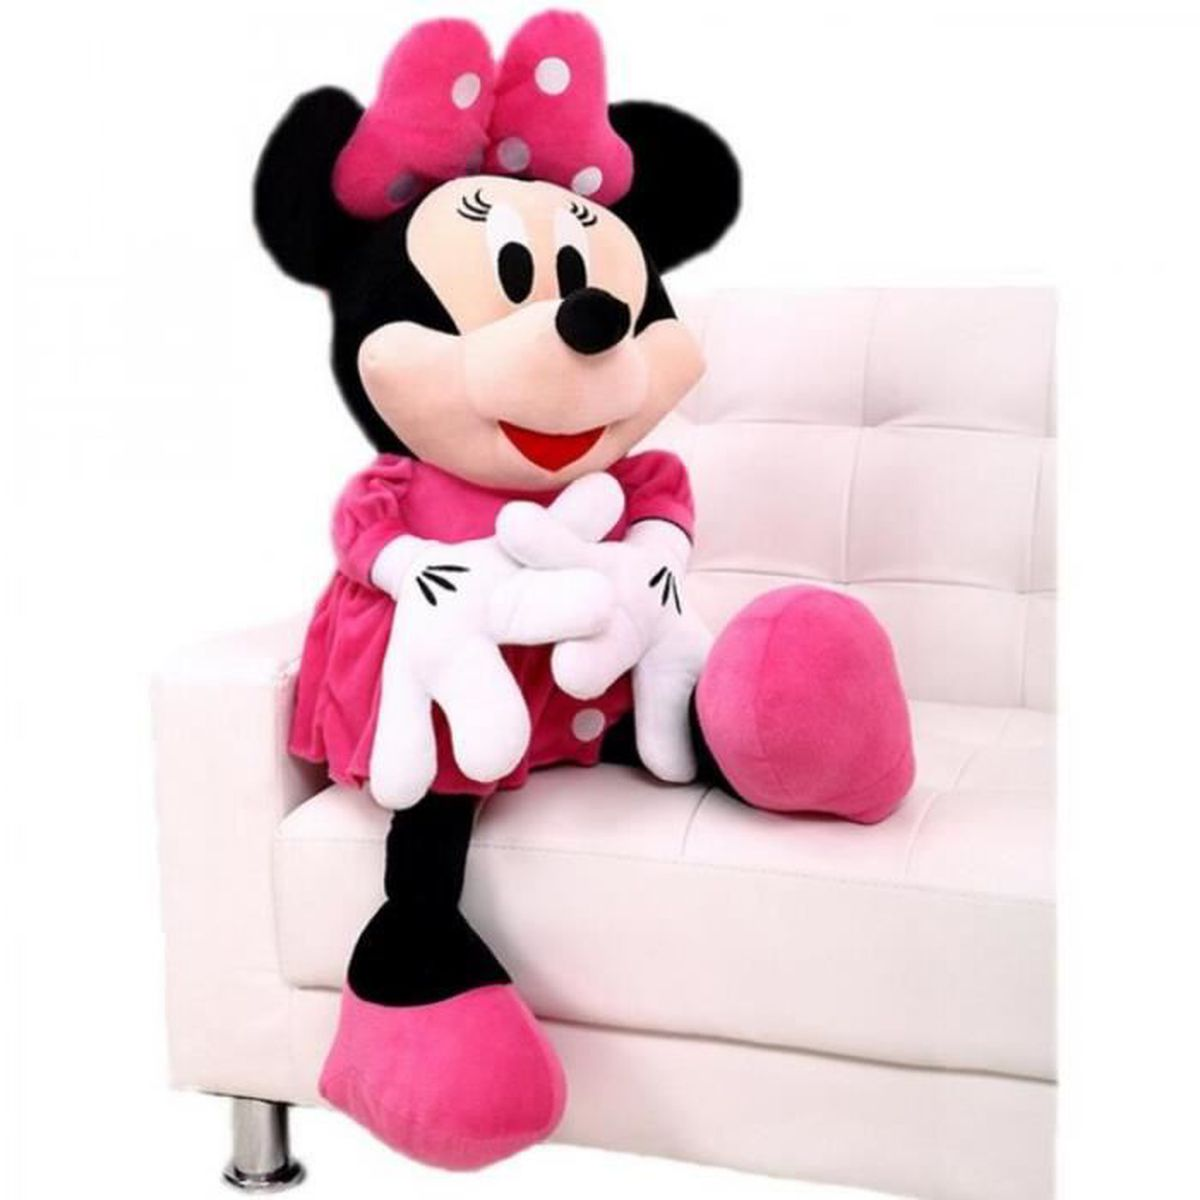 grosse peluche rose. Black Bedroom Furniture Sets. Home Design Ideas